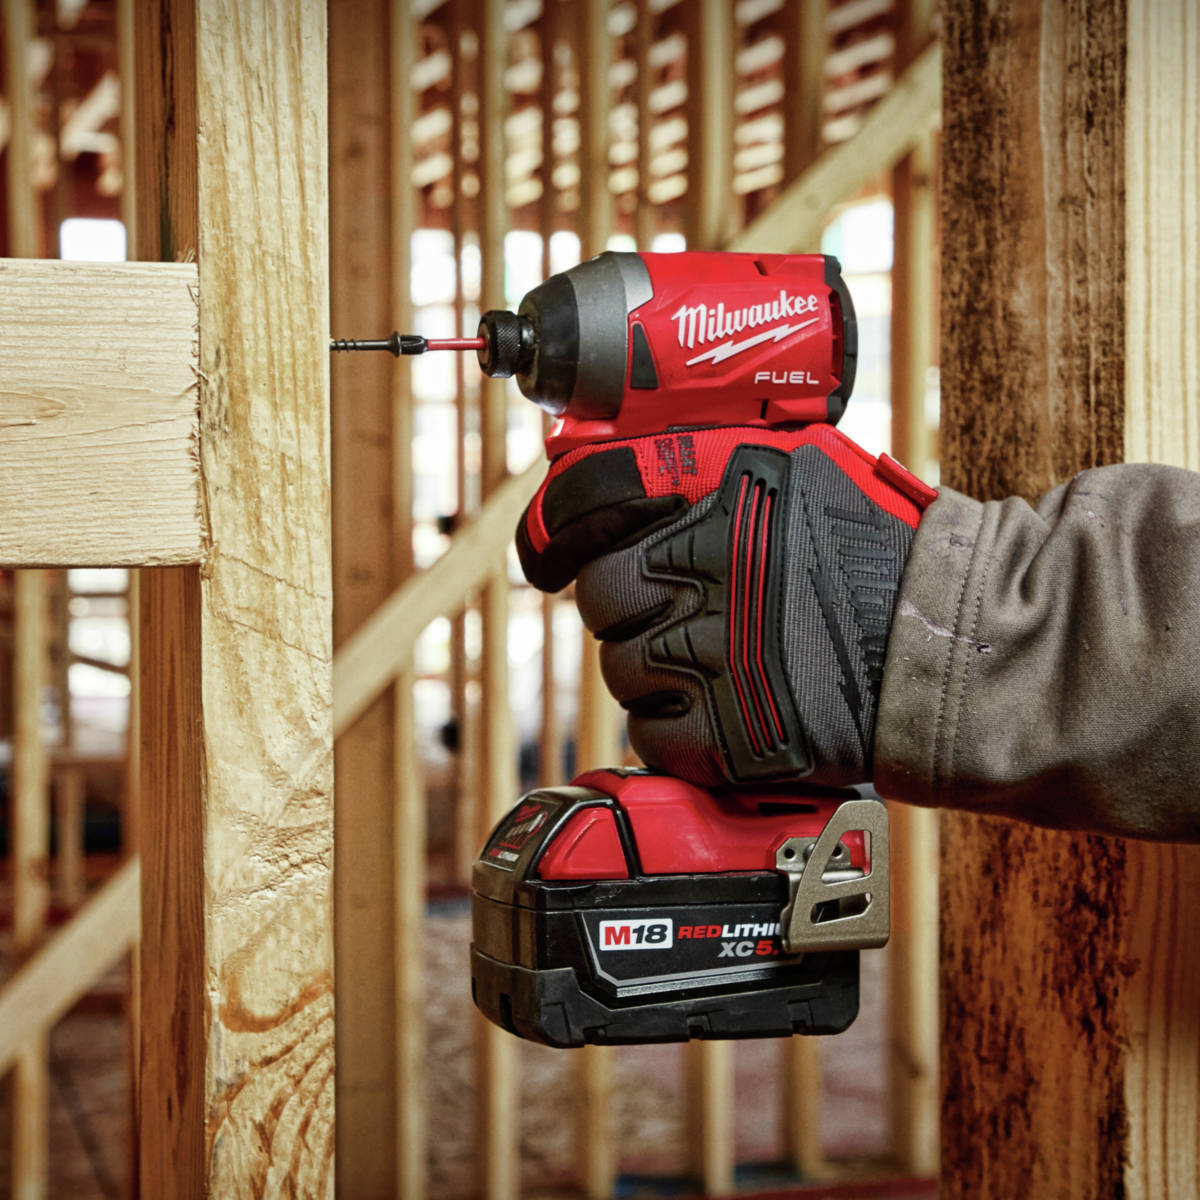 M18 FUEL 1/4 in. Hex Impact Driver is the most compact impact driver in the industry